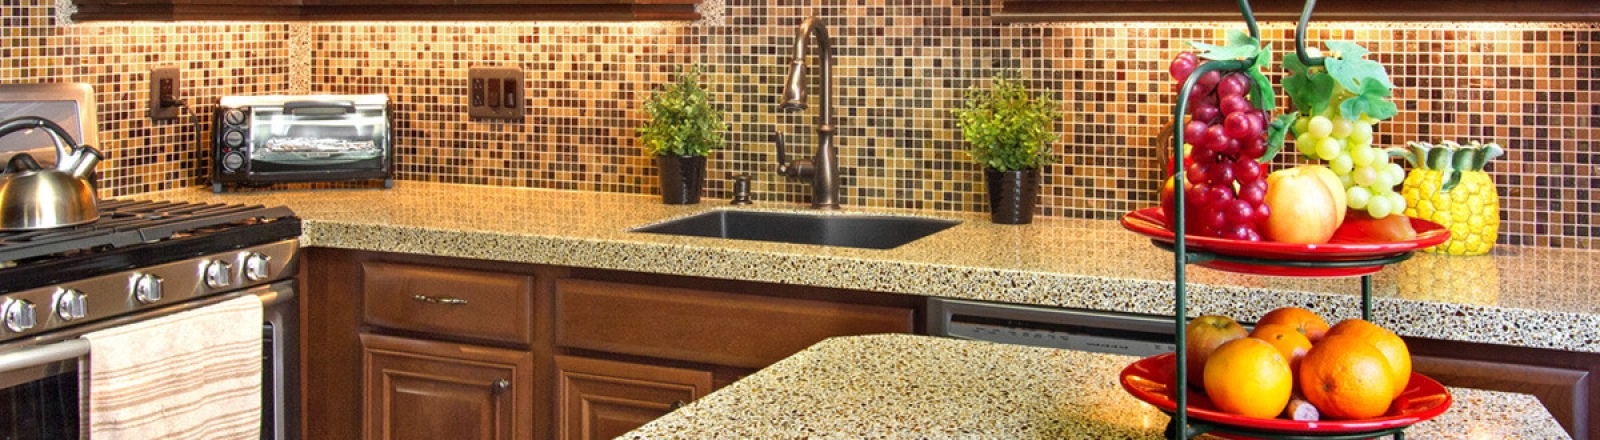 Granite Countertop Installation and Repair in Frederick, Maryland